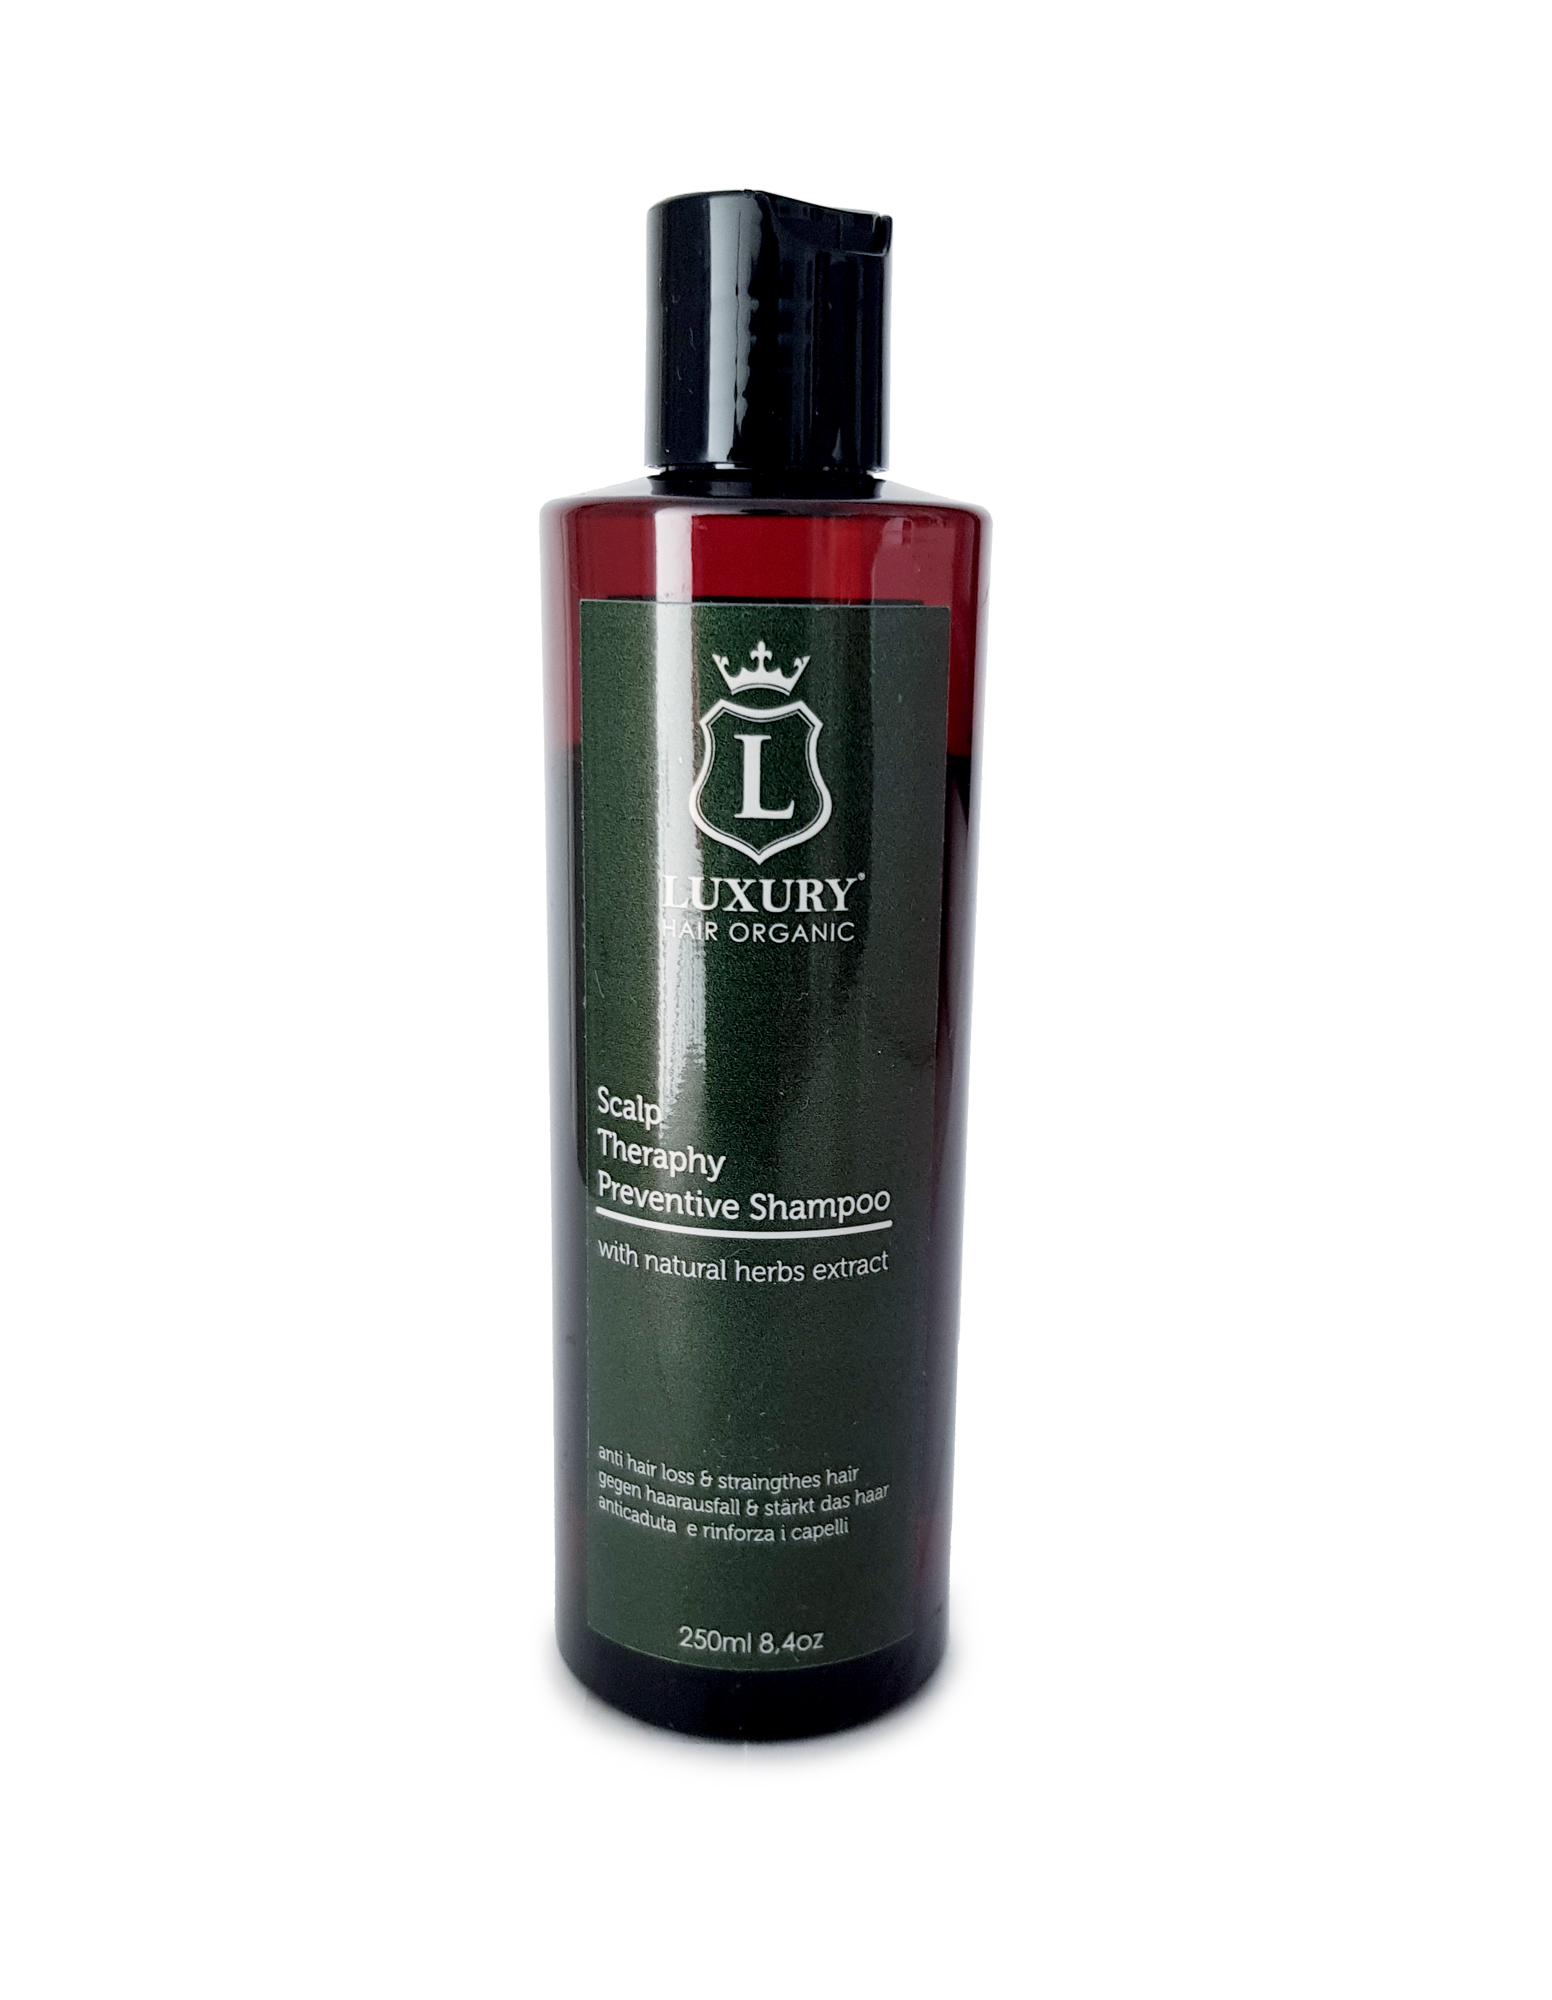 Scalp-Therapy-Preventive-Shampoo-with-Natural-Herbals-Extract